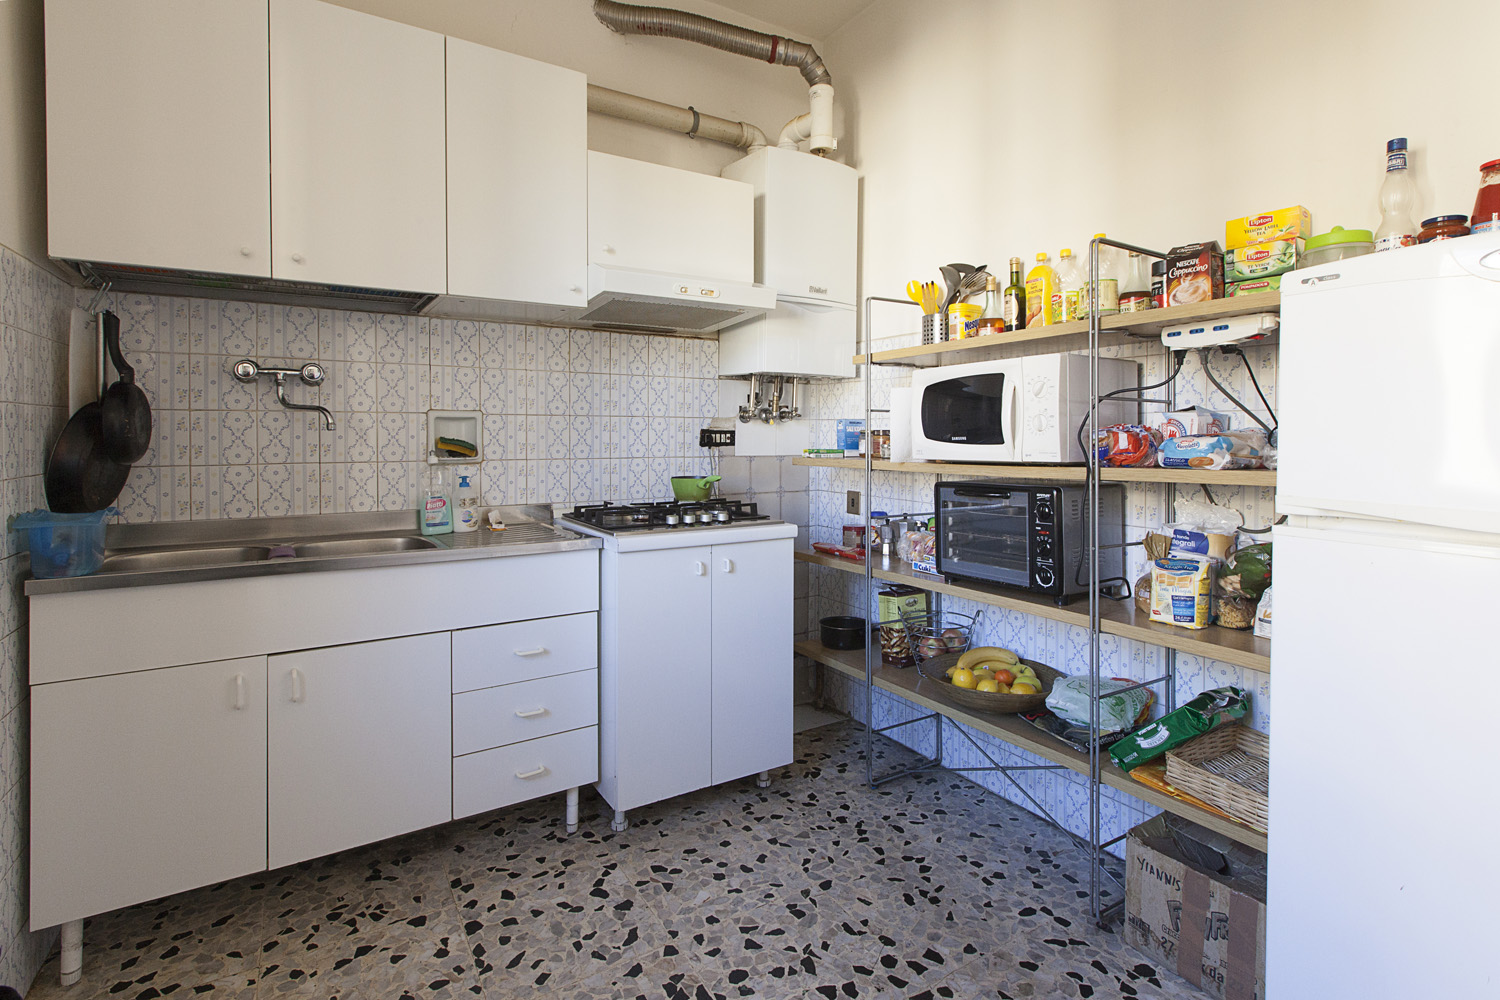 Kitchen Design Courses Near Me Lavagnini Mansard Room Room In Florence